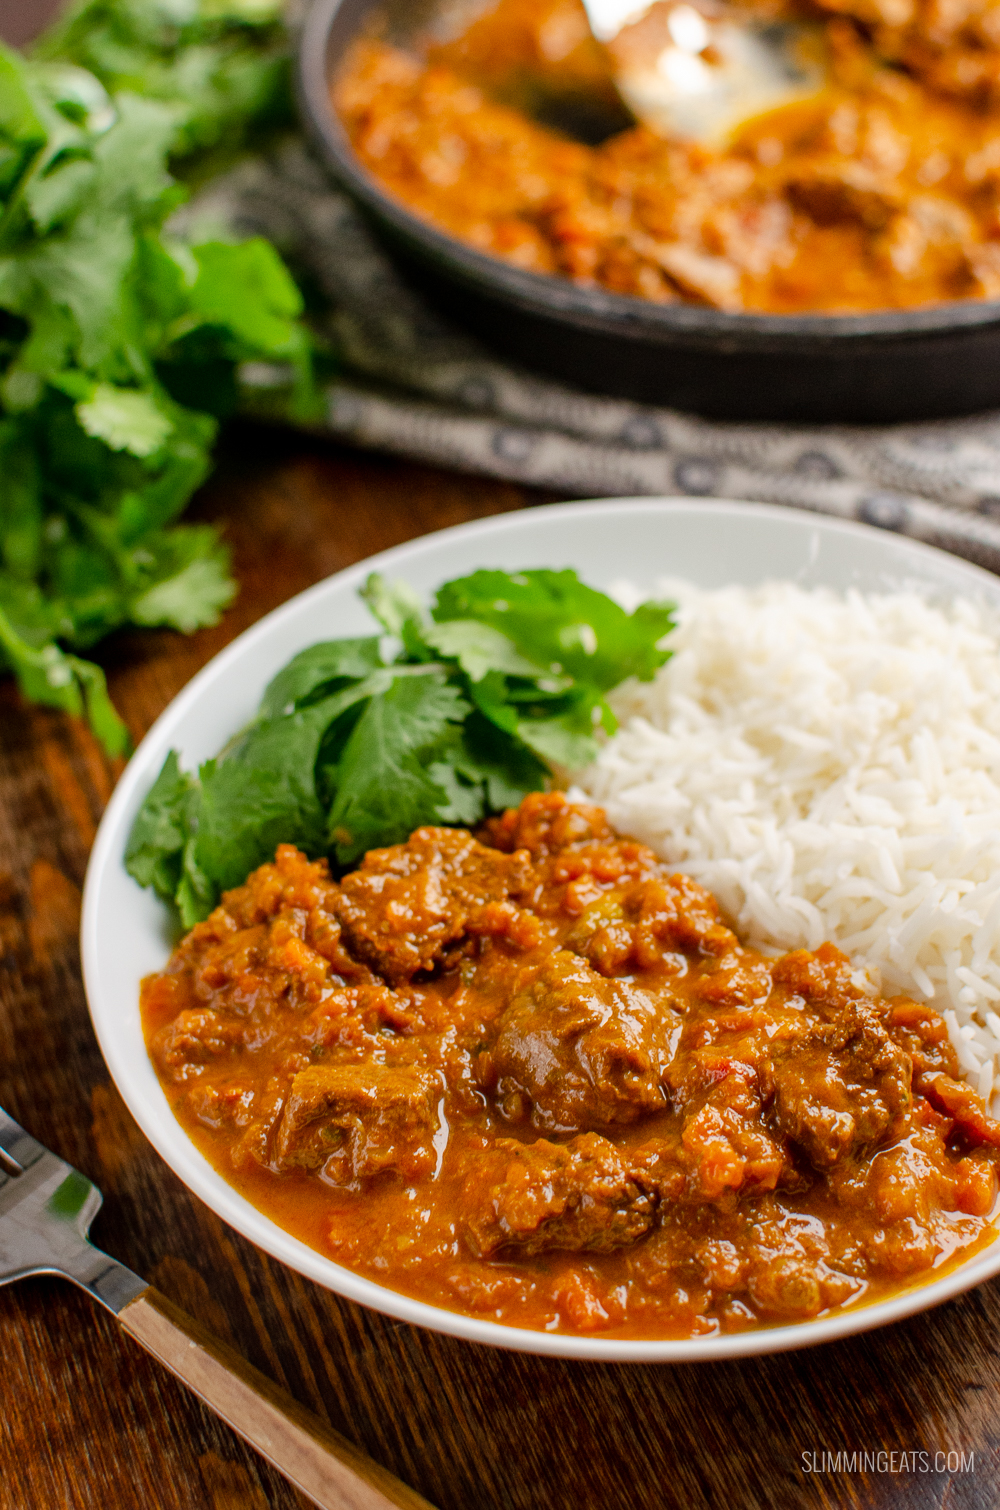 bombay beef curry in white bowl with rice and coriander, pan visible in background